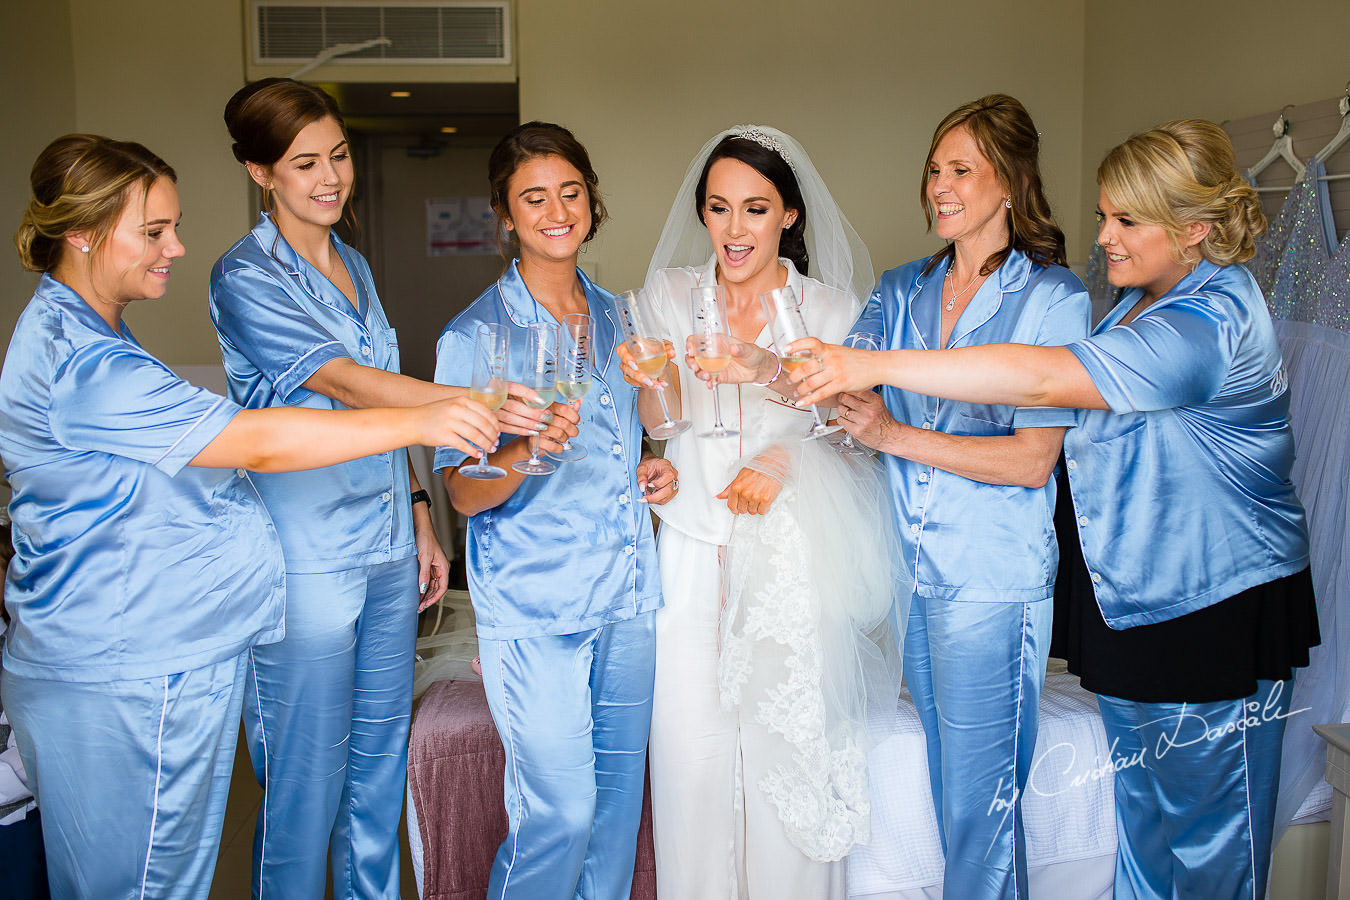 Bride and Bridal Party, moment captured during an Elegant Minthis Hills Wedding, in Paphos, Cyprus.